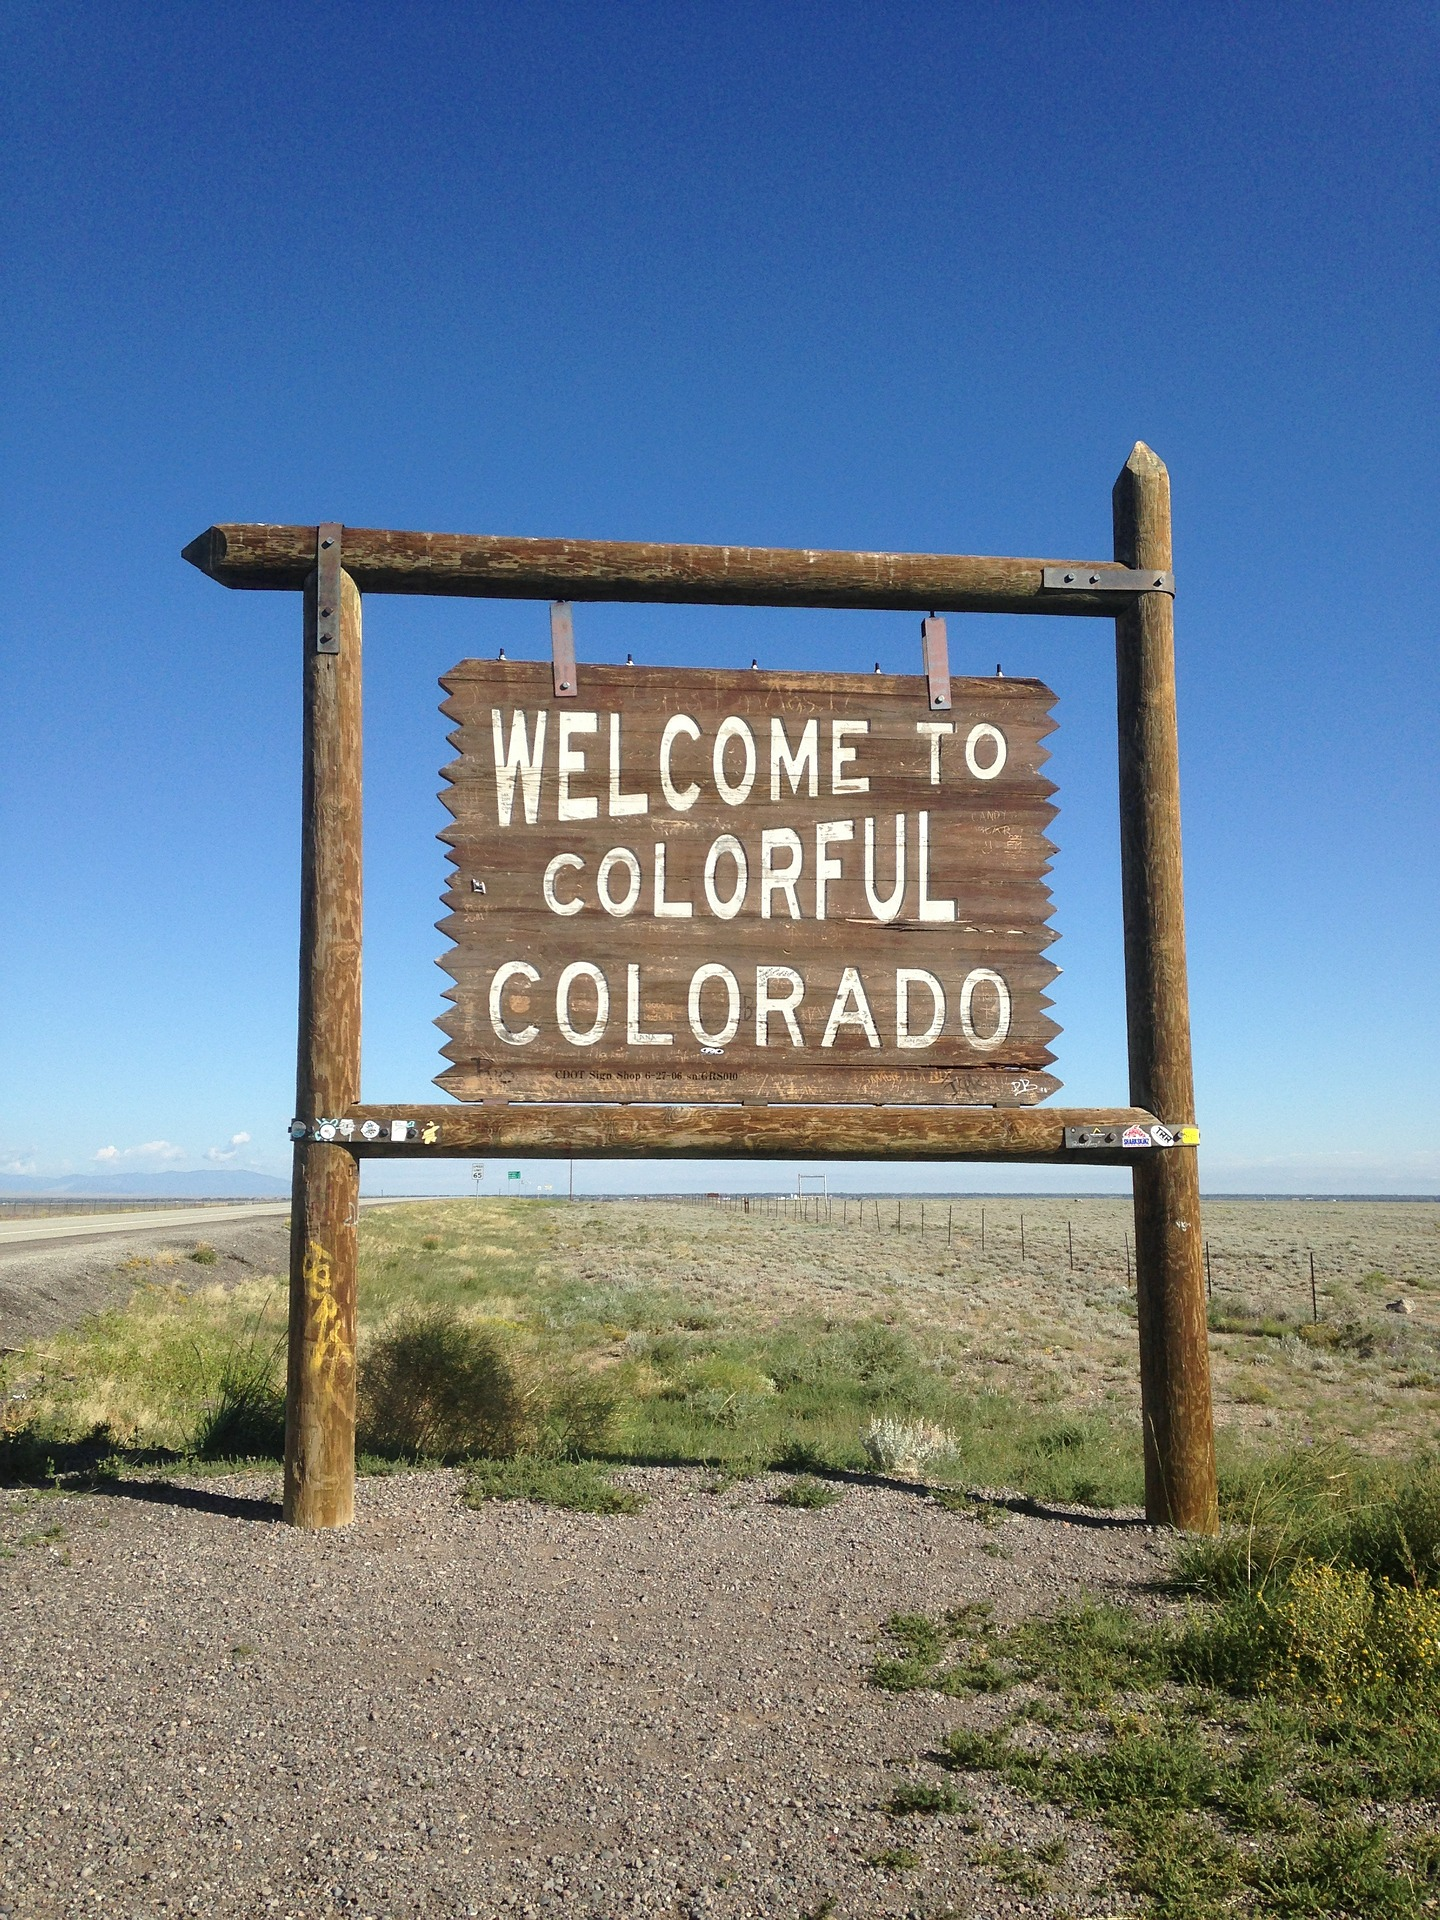 How Did Colorado's Counties Get Their Names?